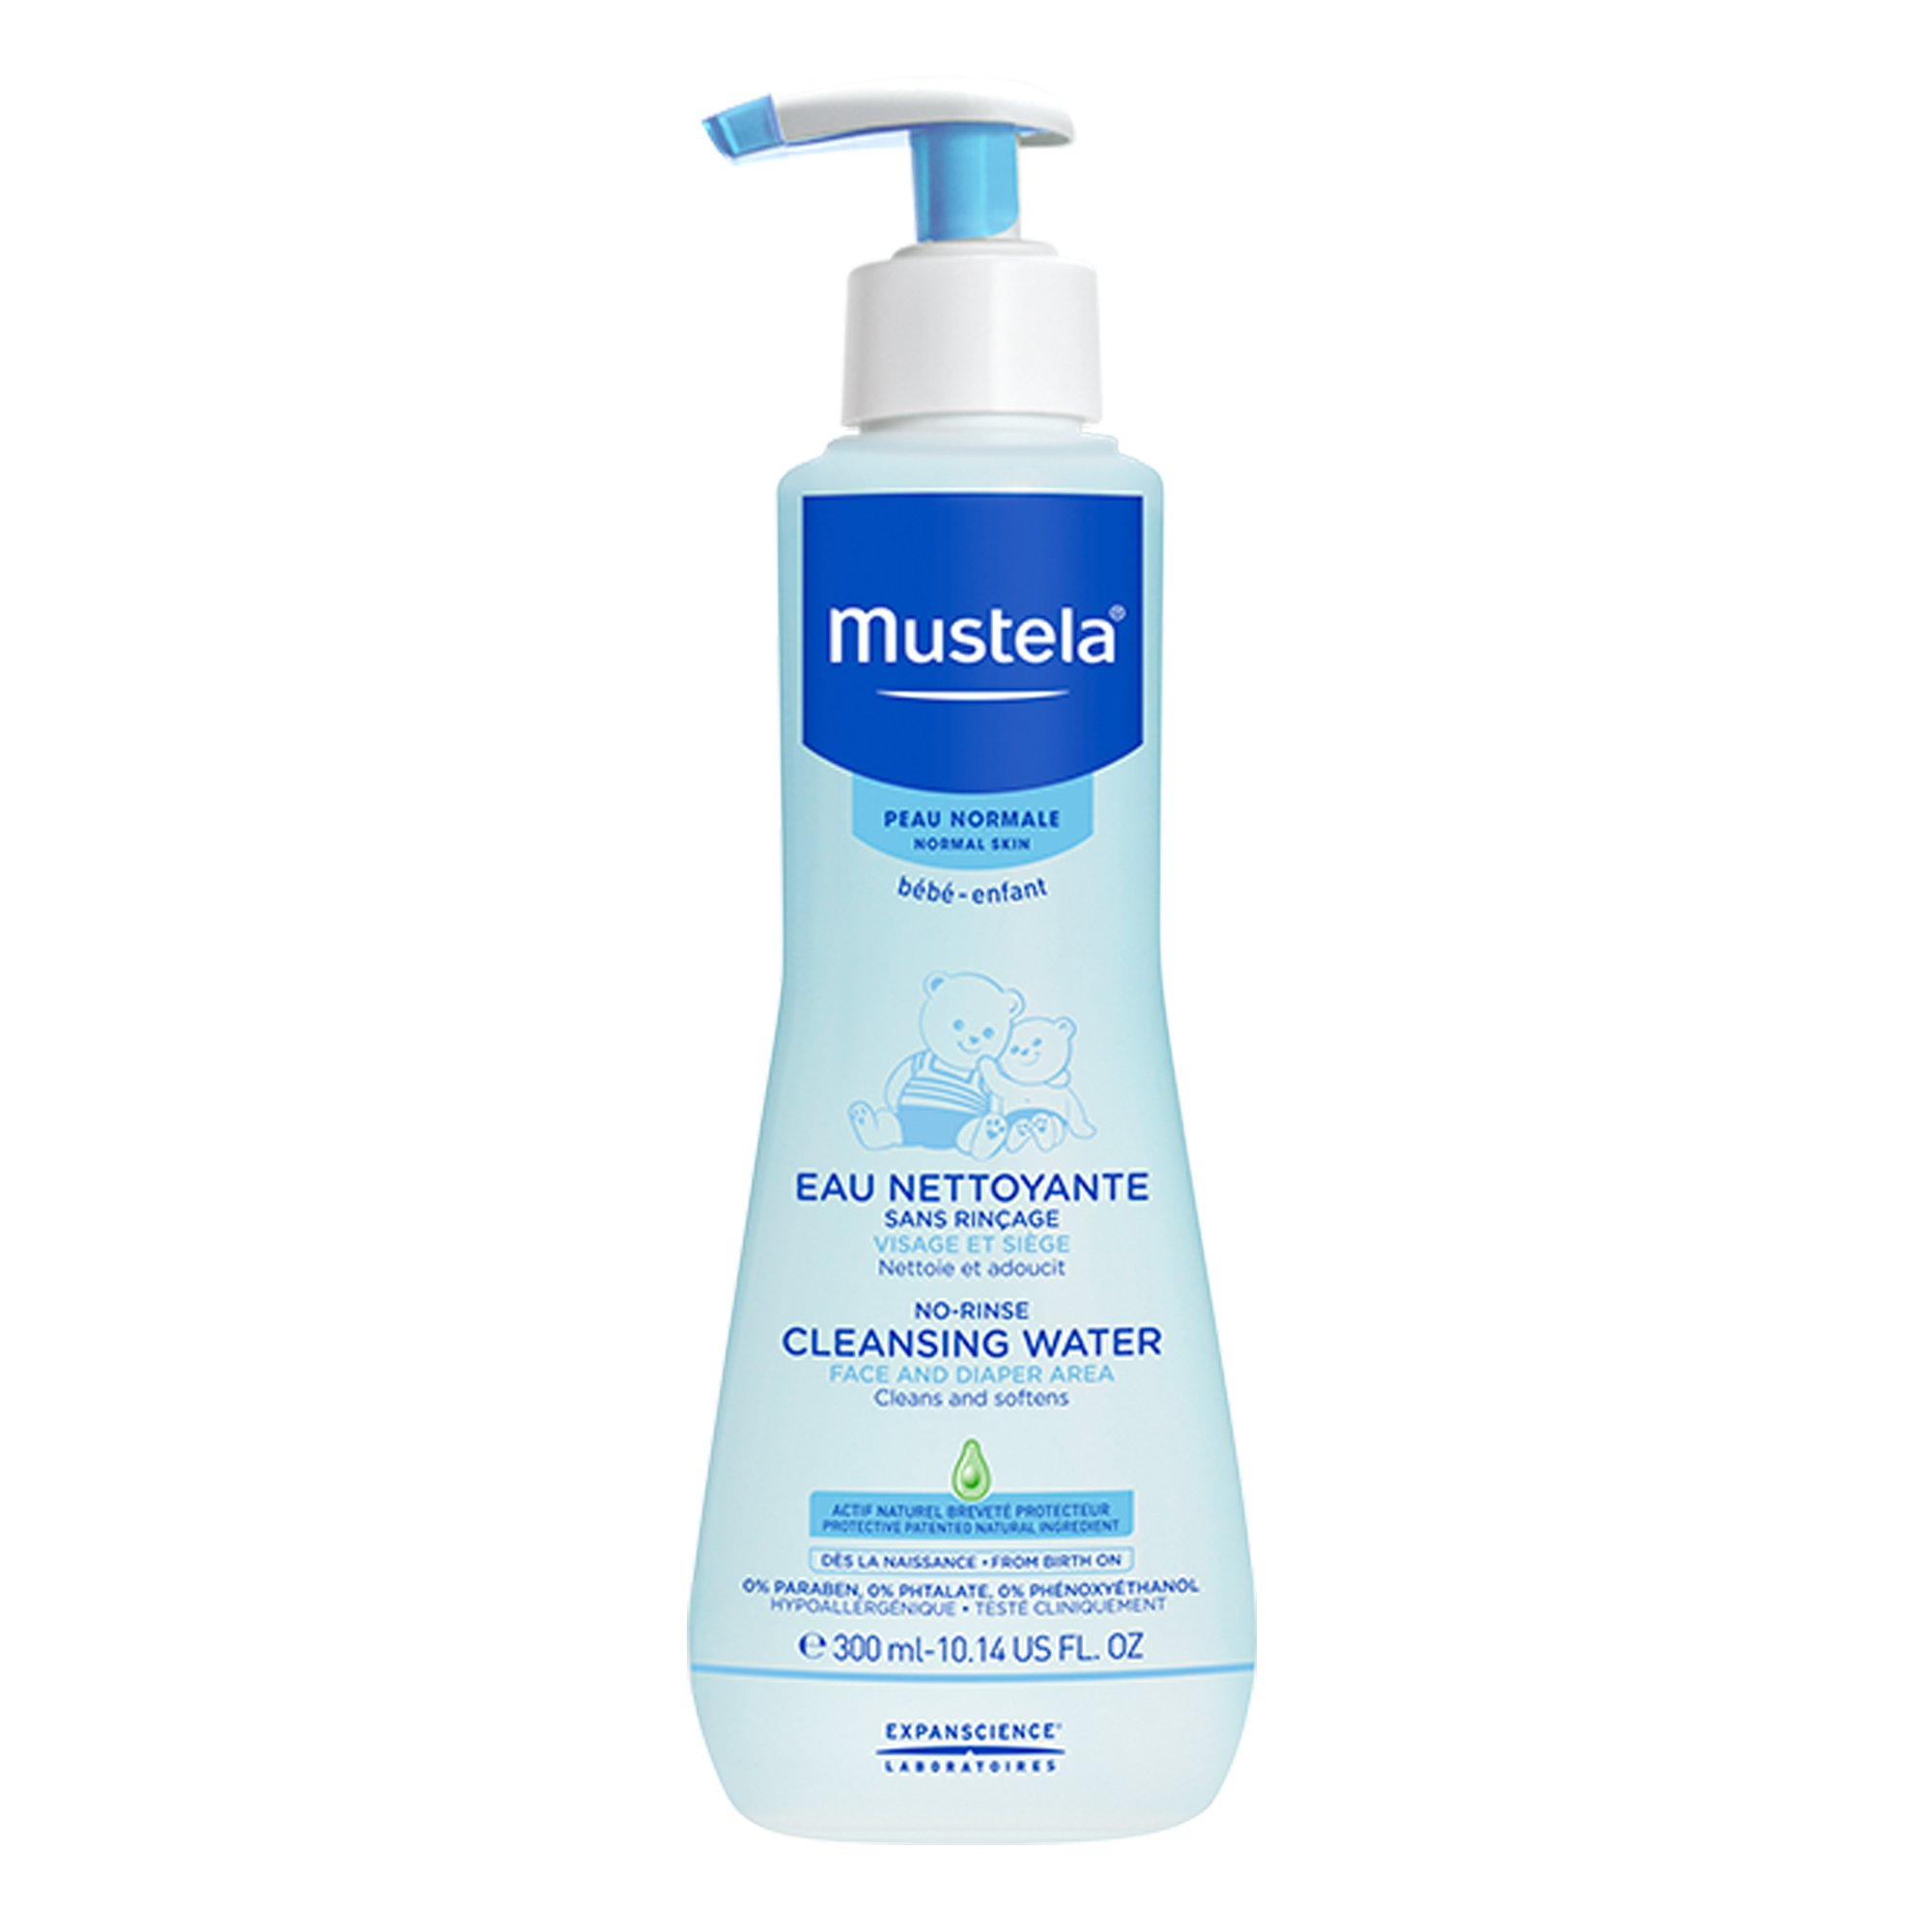 Mustela No Rinse Cleansing Water, Gentle Micellar Water with Natural Avocado Perseose and Aloe Vera